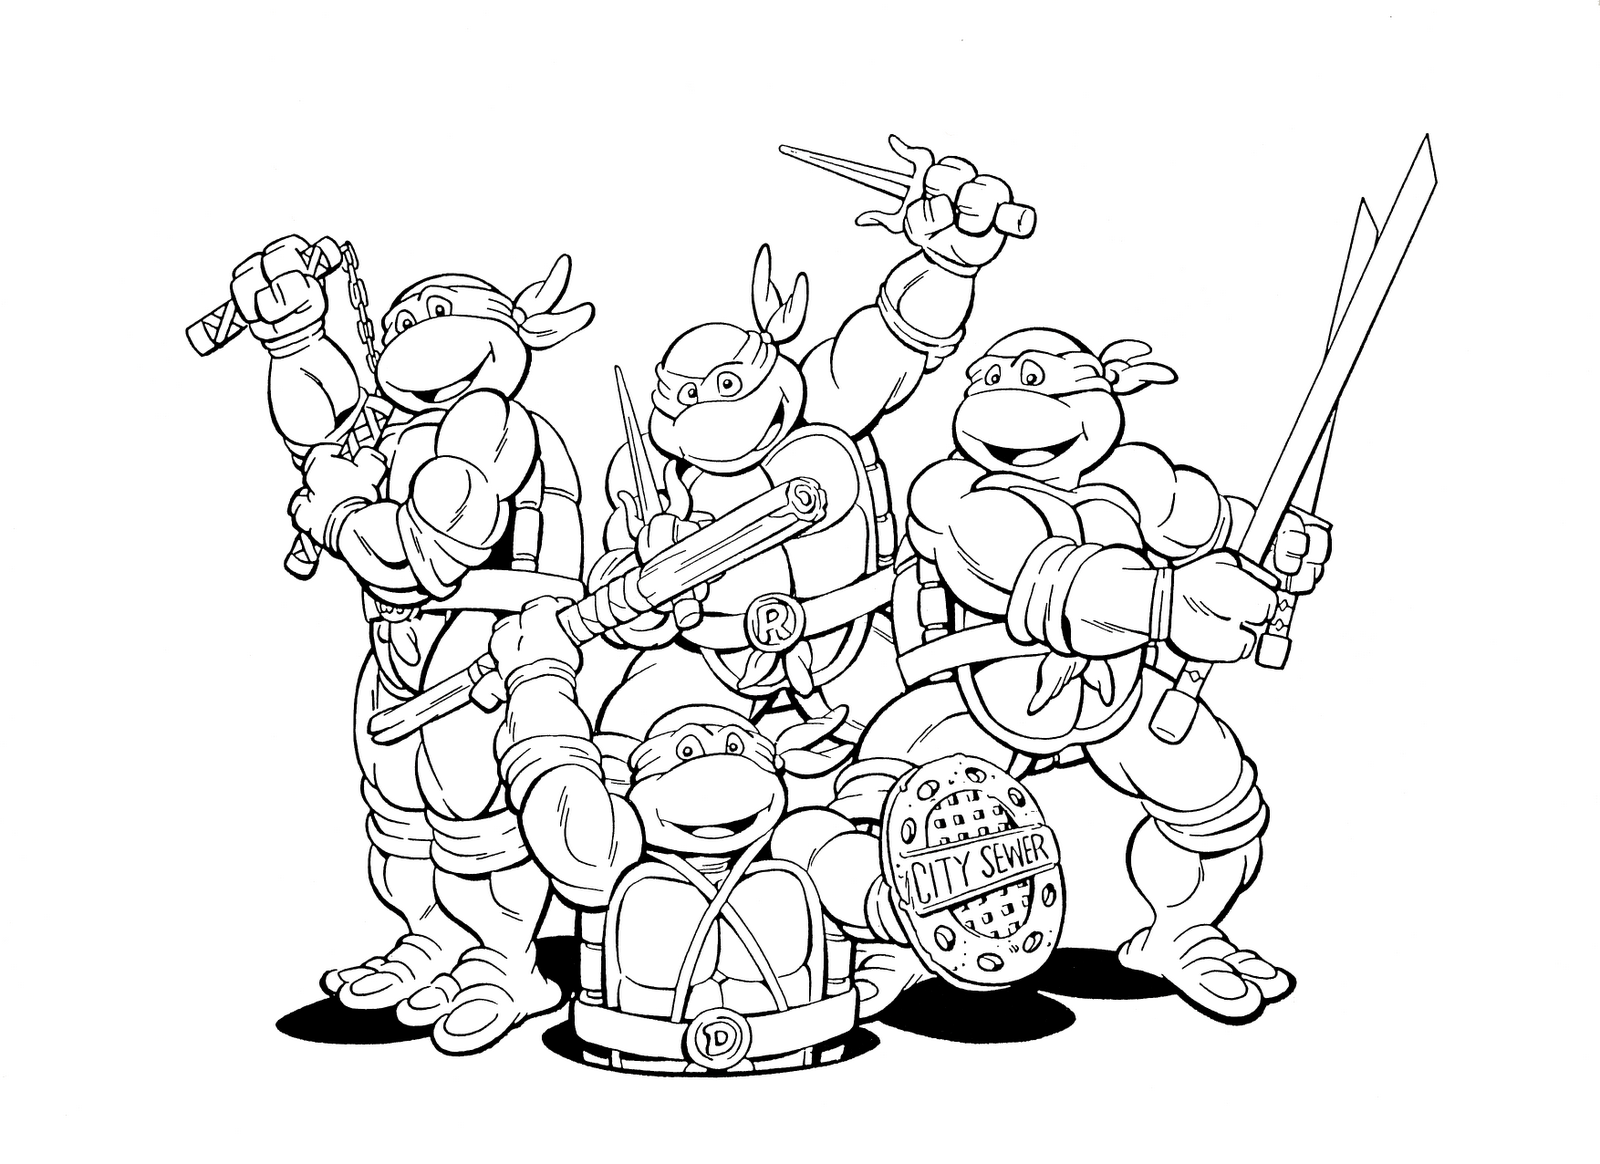 teenage ninja turtles coloring pages craftoholic teenage mutant ninja turtles coloring pages pages teenage turtles ninja coloring